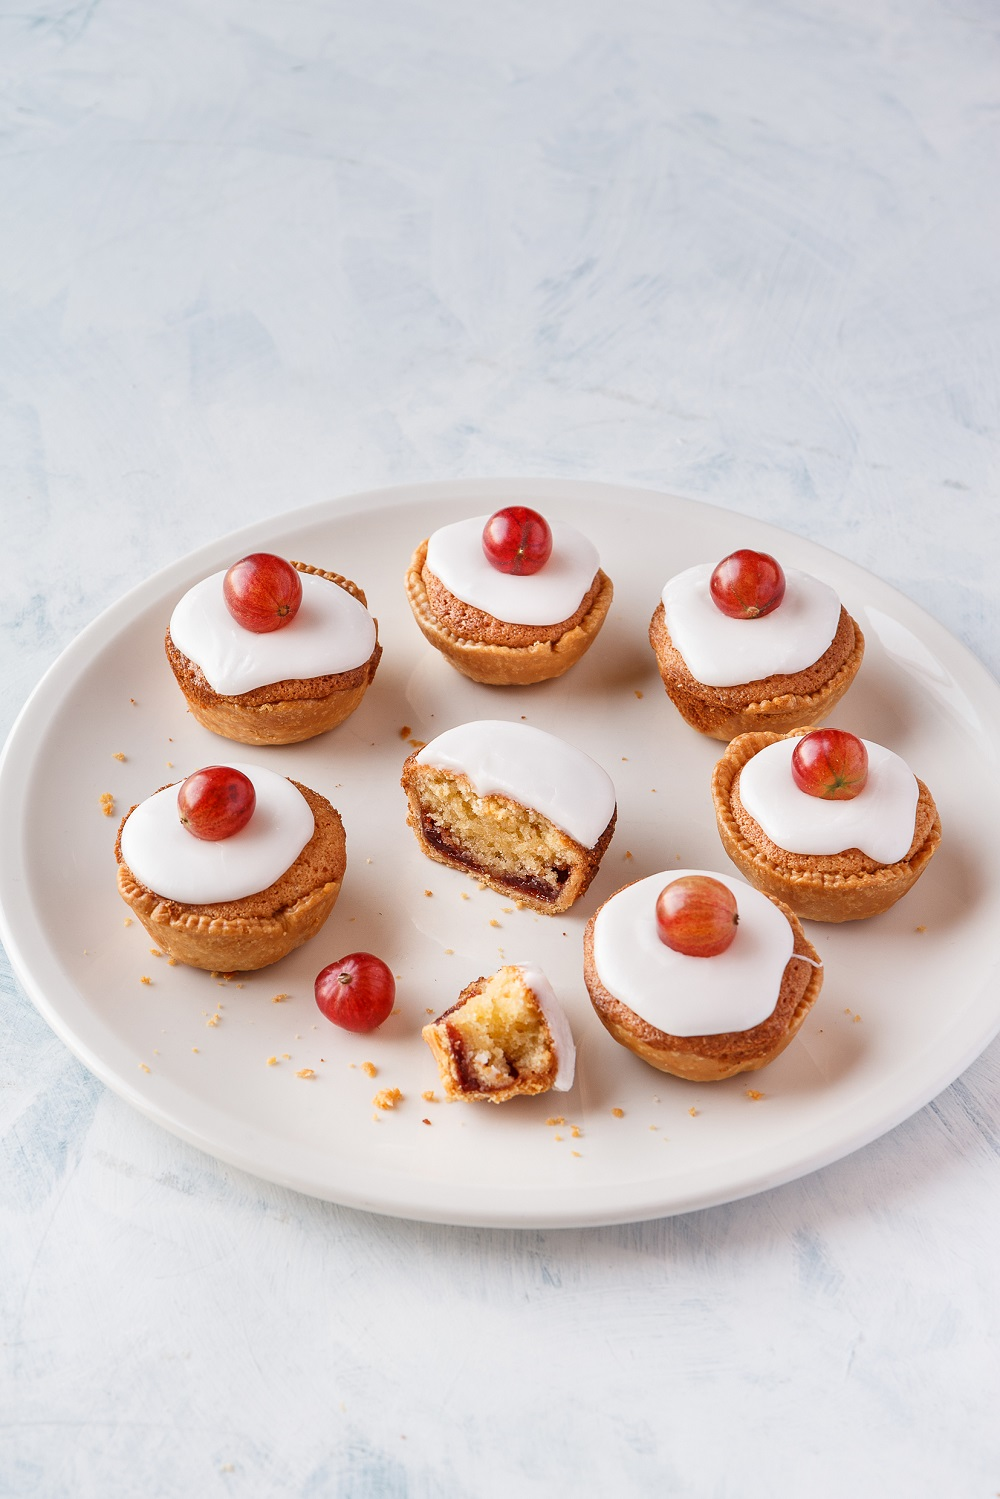 BerryWorld Red Gooseberry Bakewell Tarts